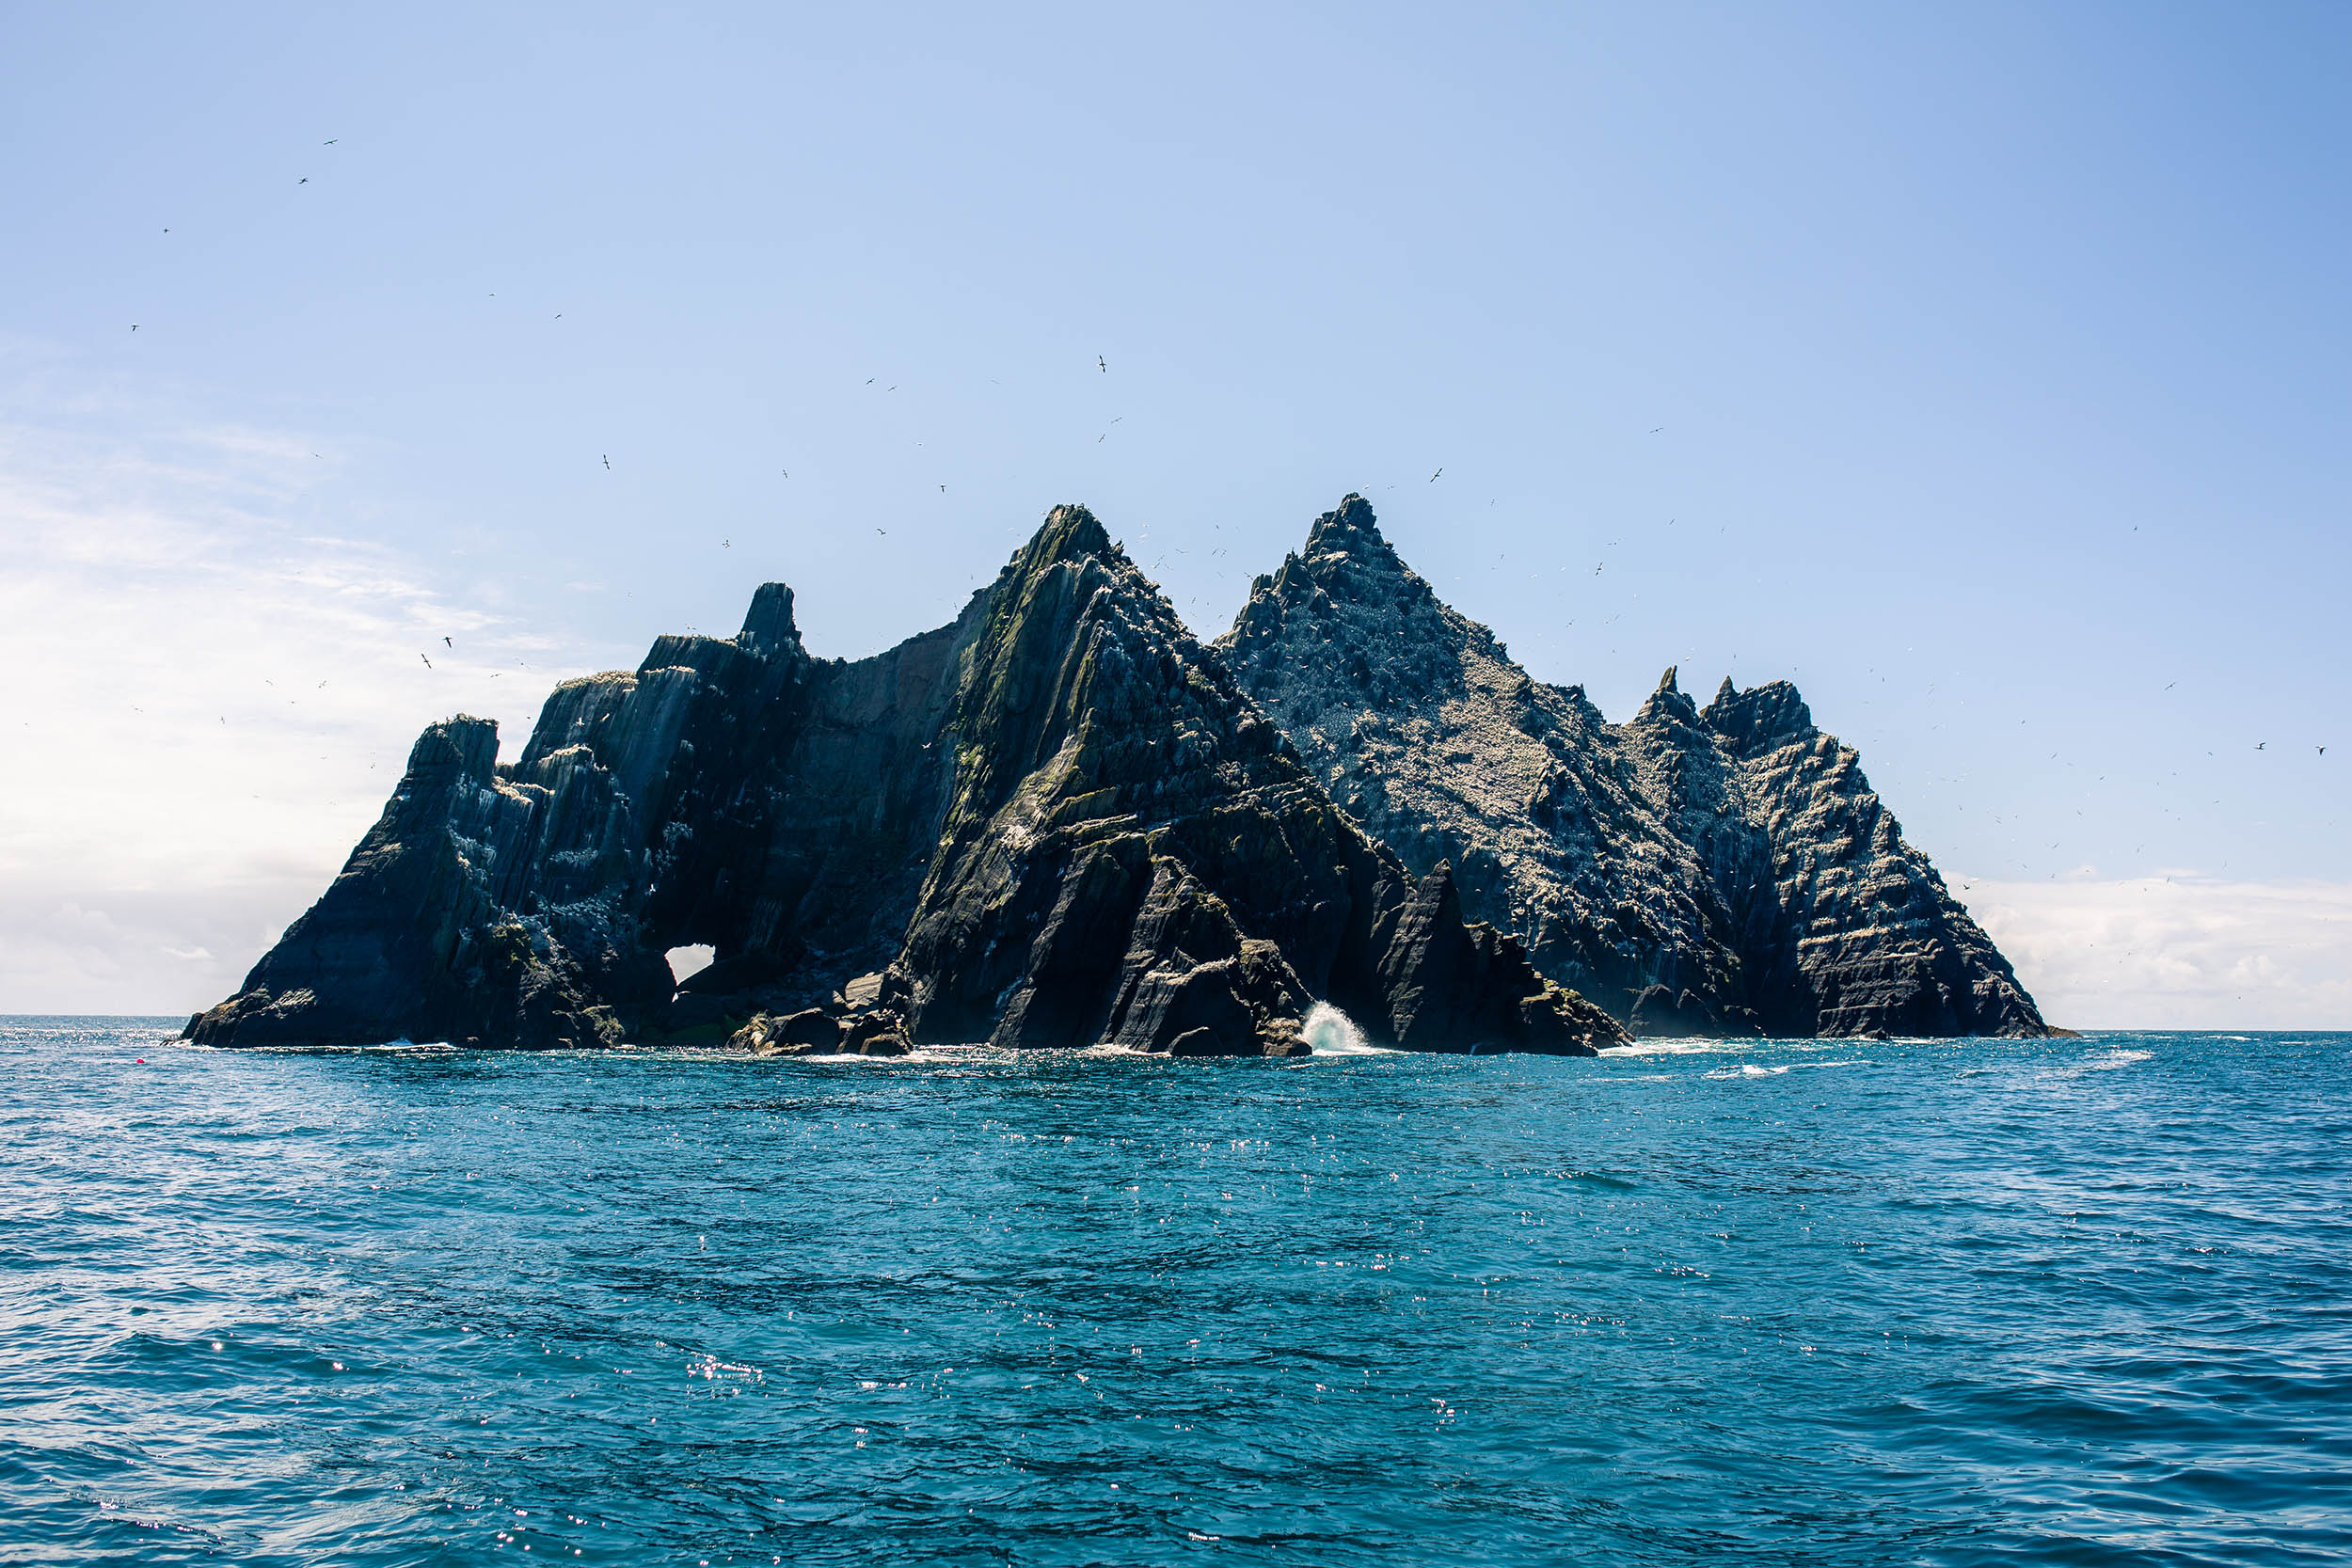 IRELAND_KERRY_SKELLIGS_0011